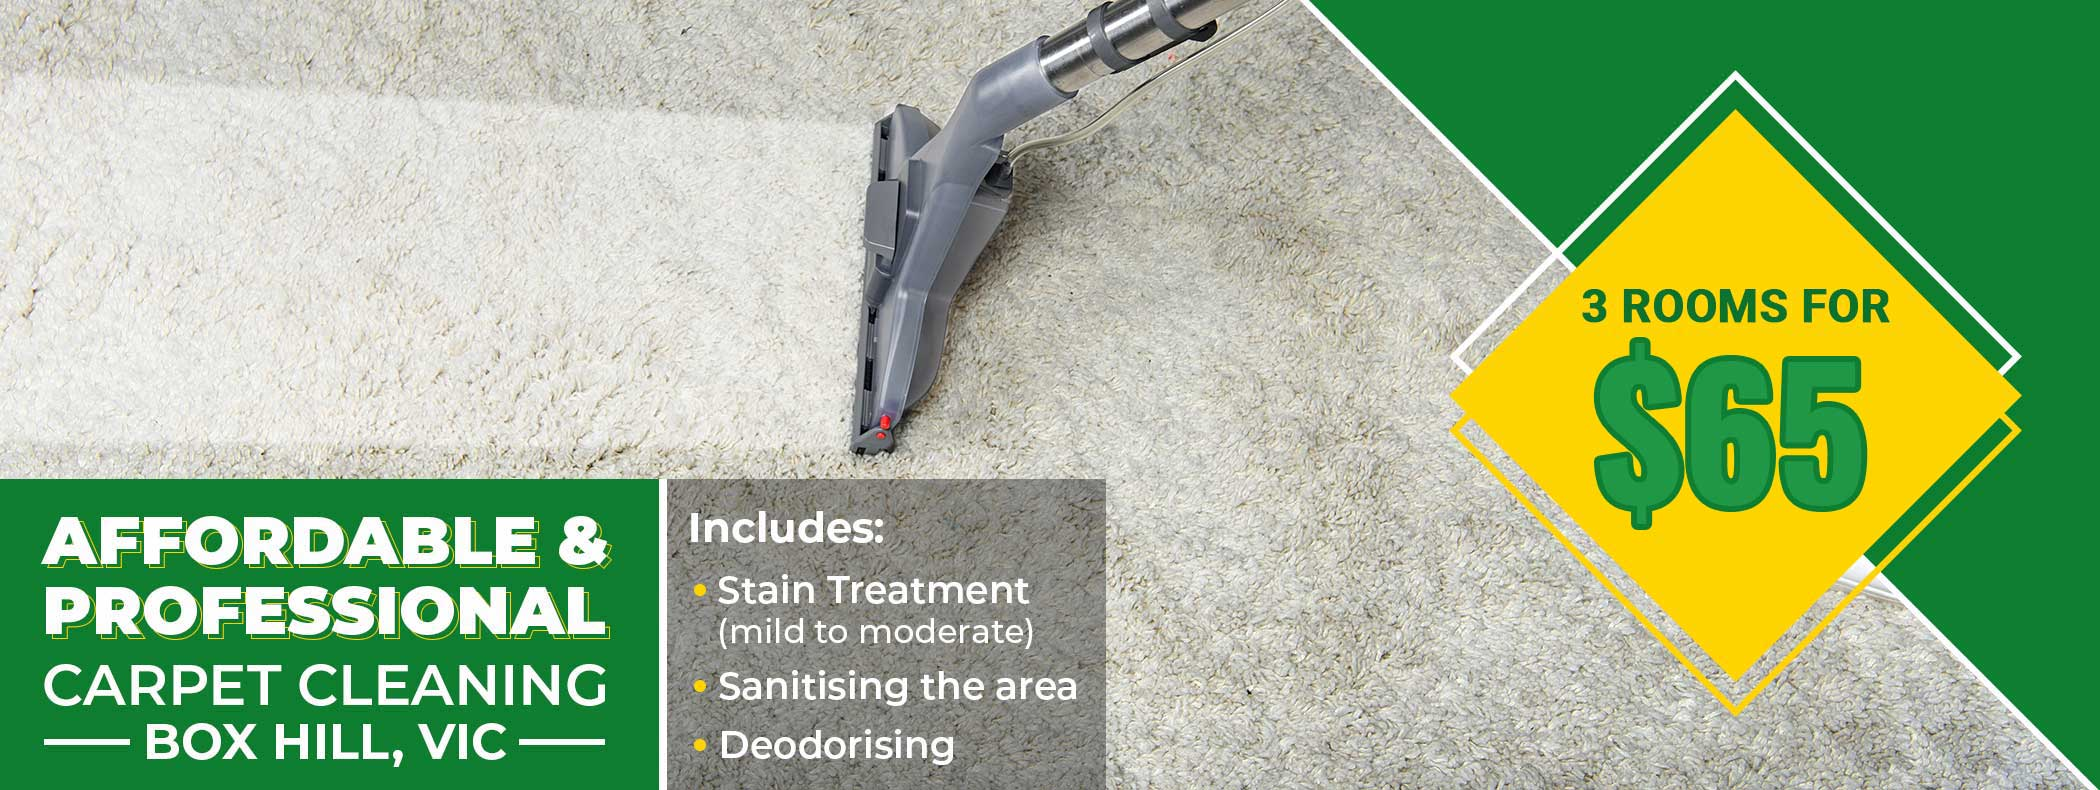 3 rooms for 99 stain treatment